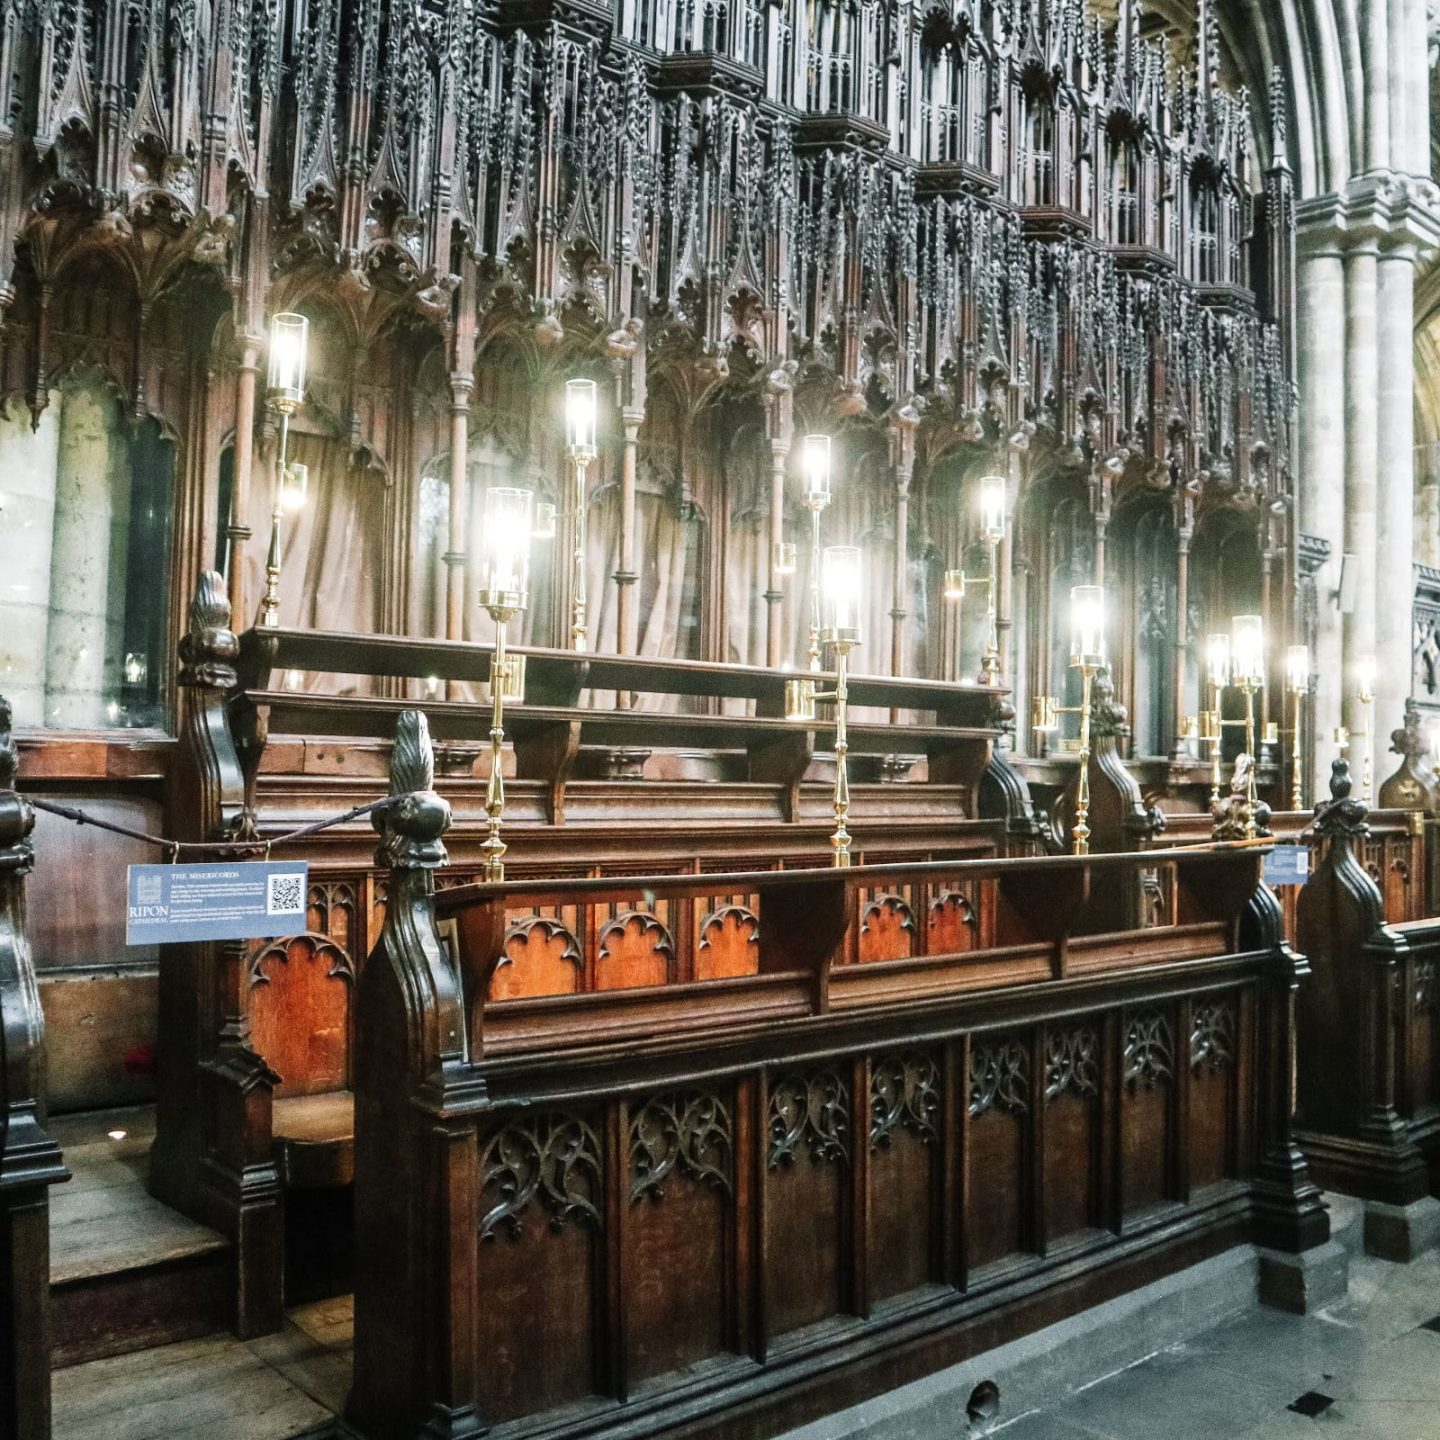 Intricately carved choir stalls